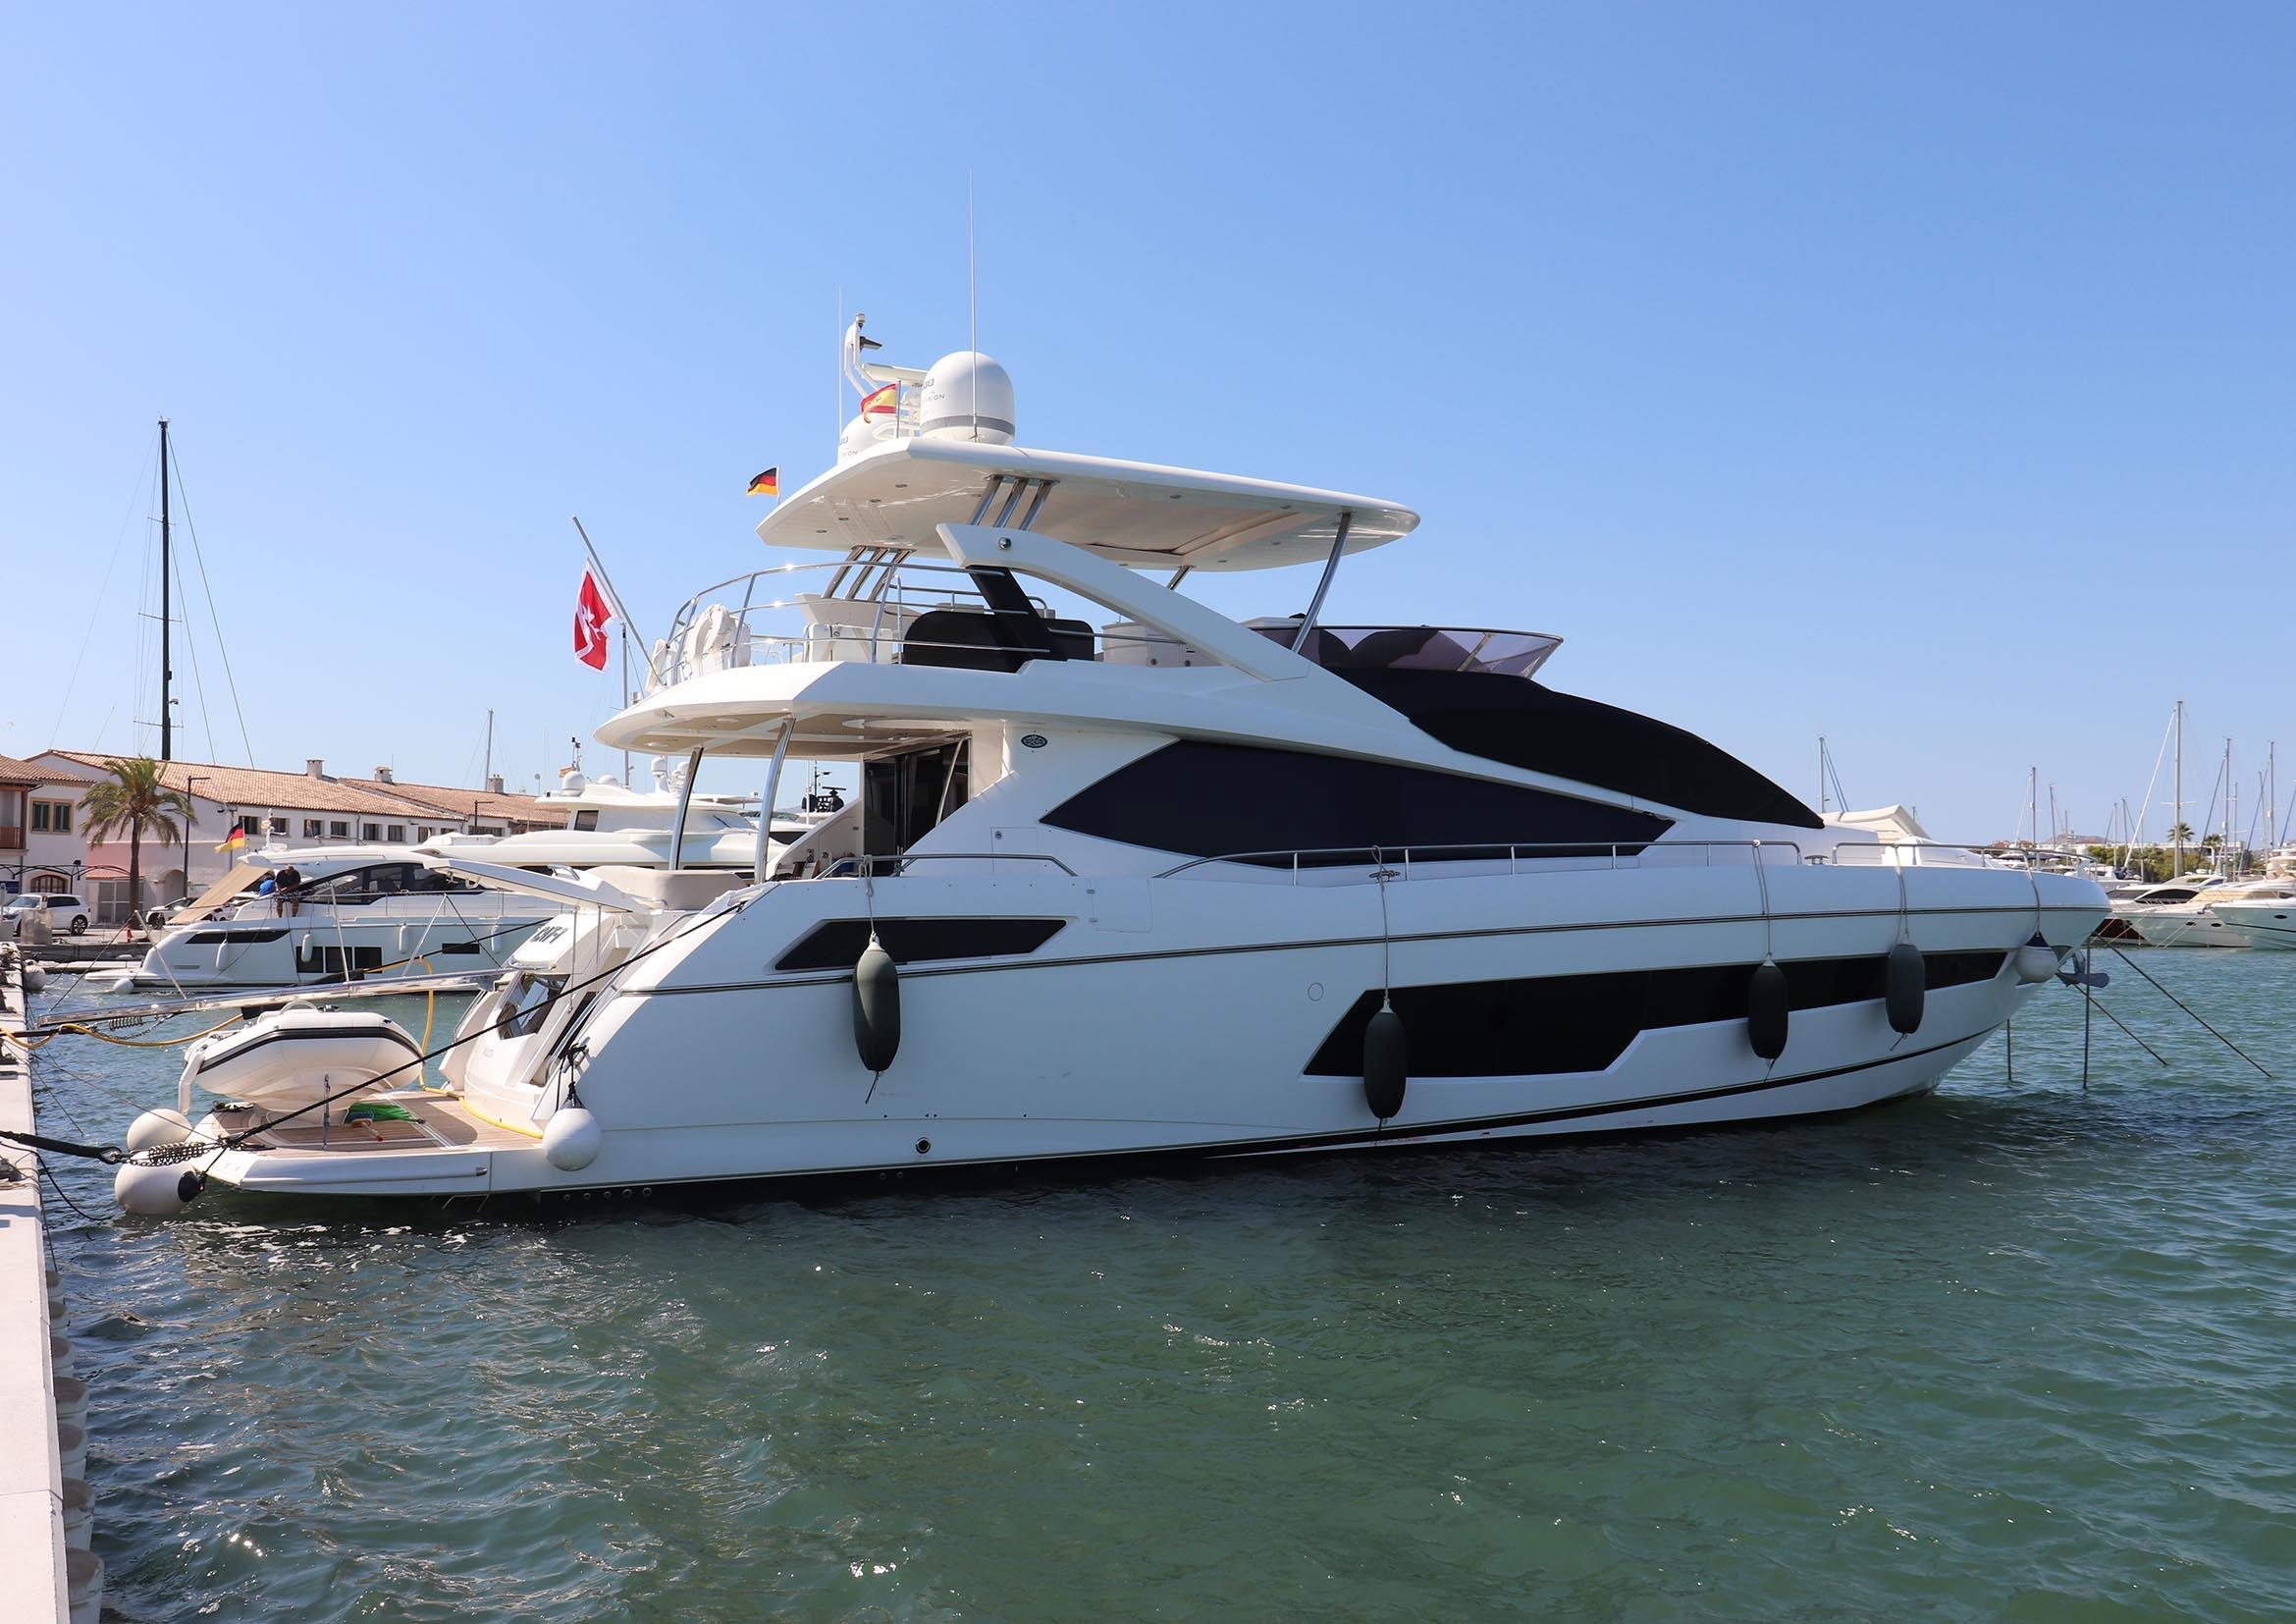 2016 Sunseeker 75 Yacht Mallorca Spain Boats Com